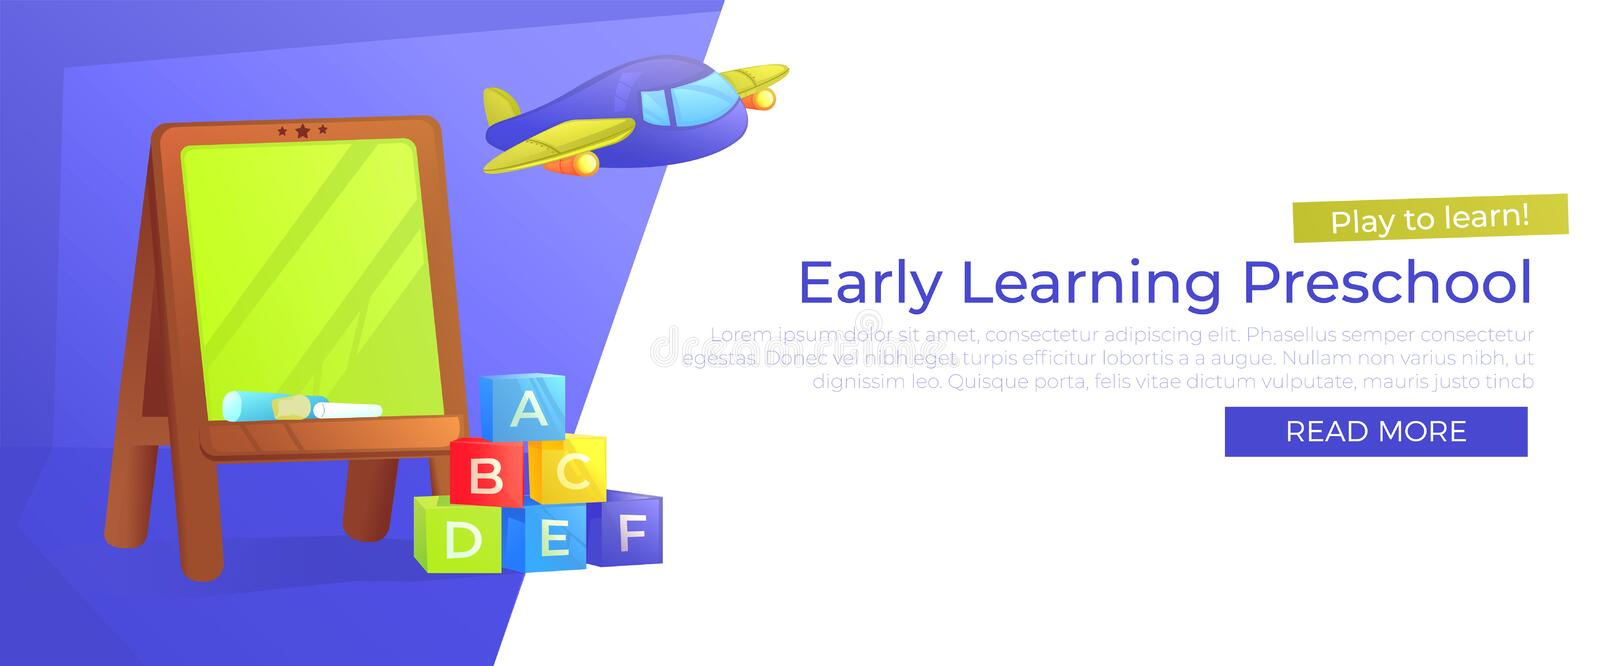 Early Learning Preschool banner. Play to learn. Advertising of kindergarten with school board and toys vector illustration